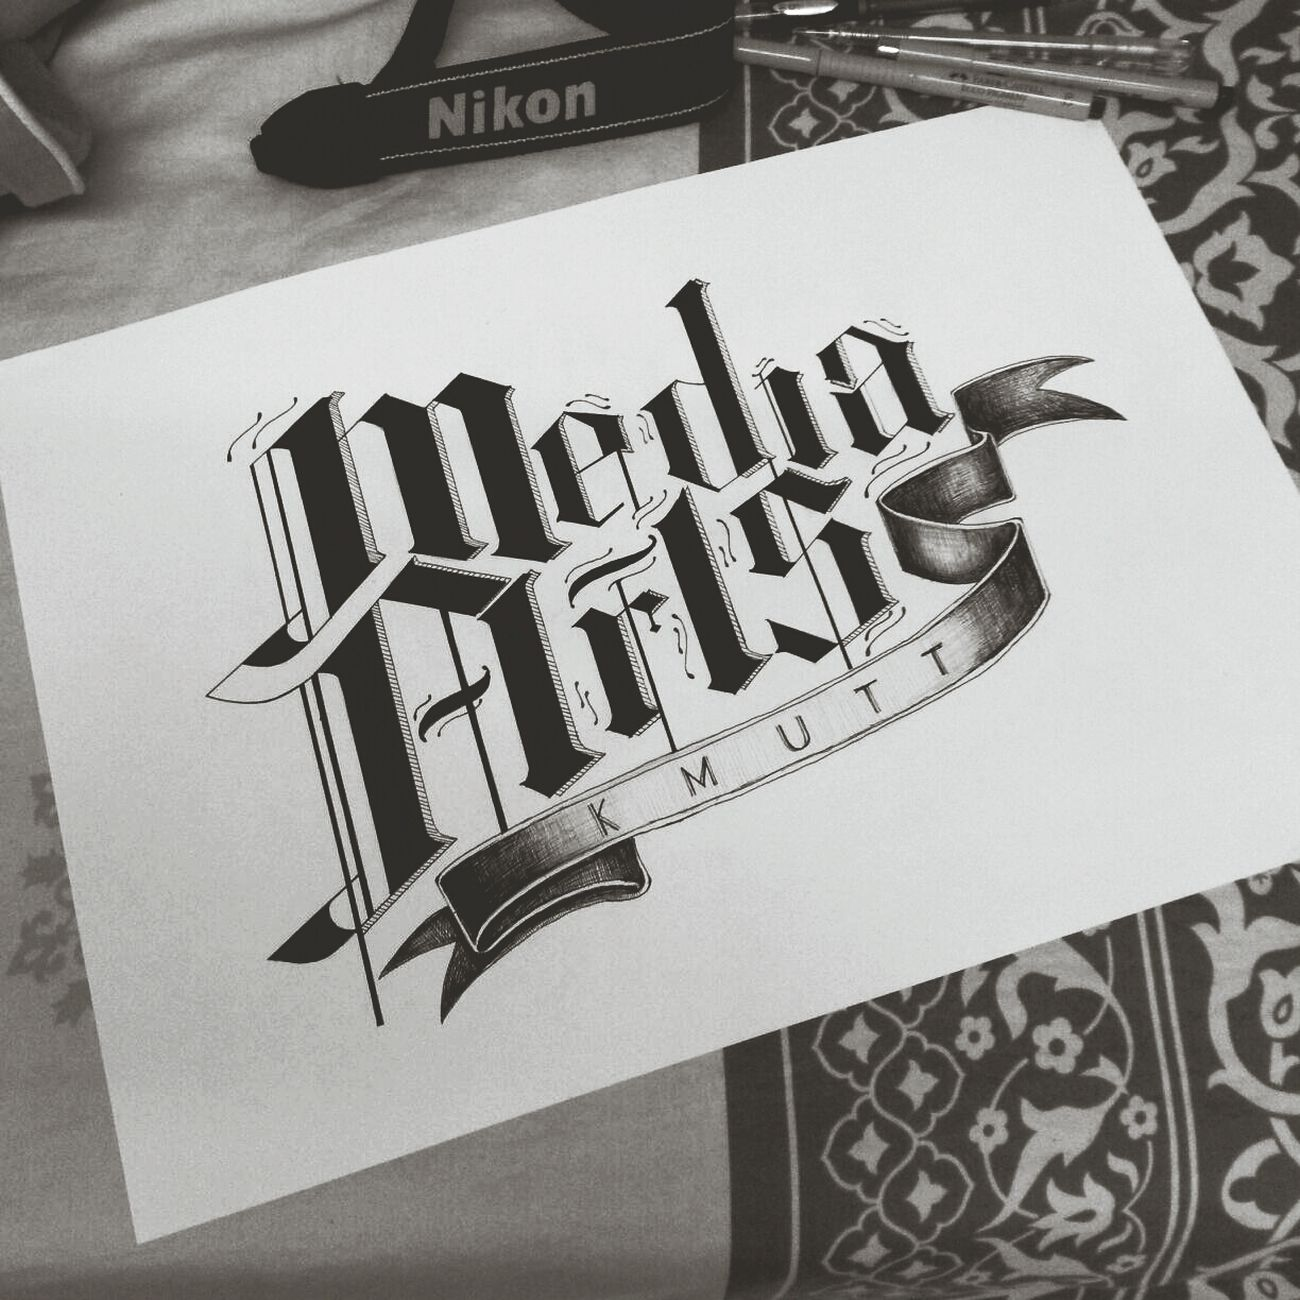 My Typography 'Media Arts KMUTT'